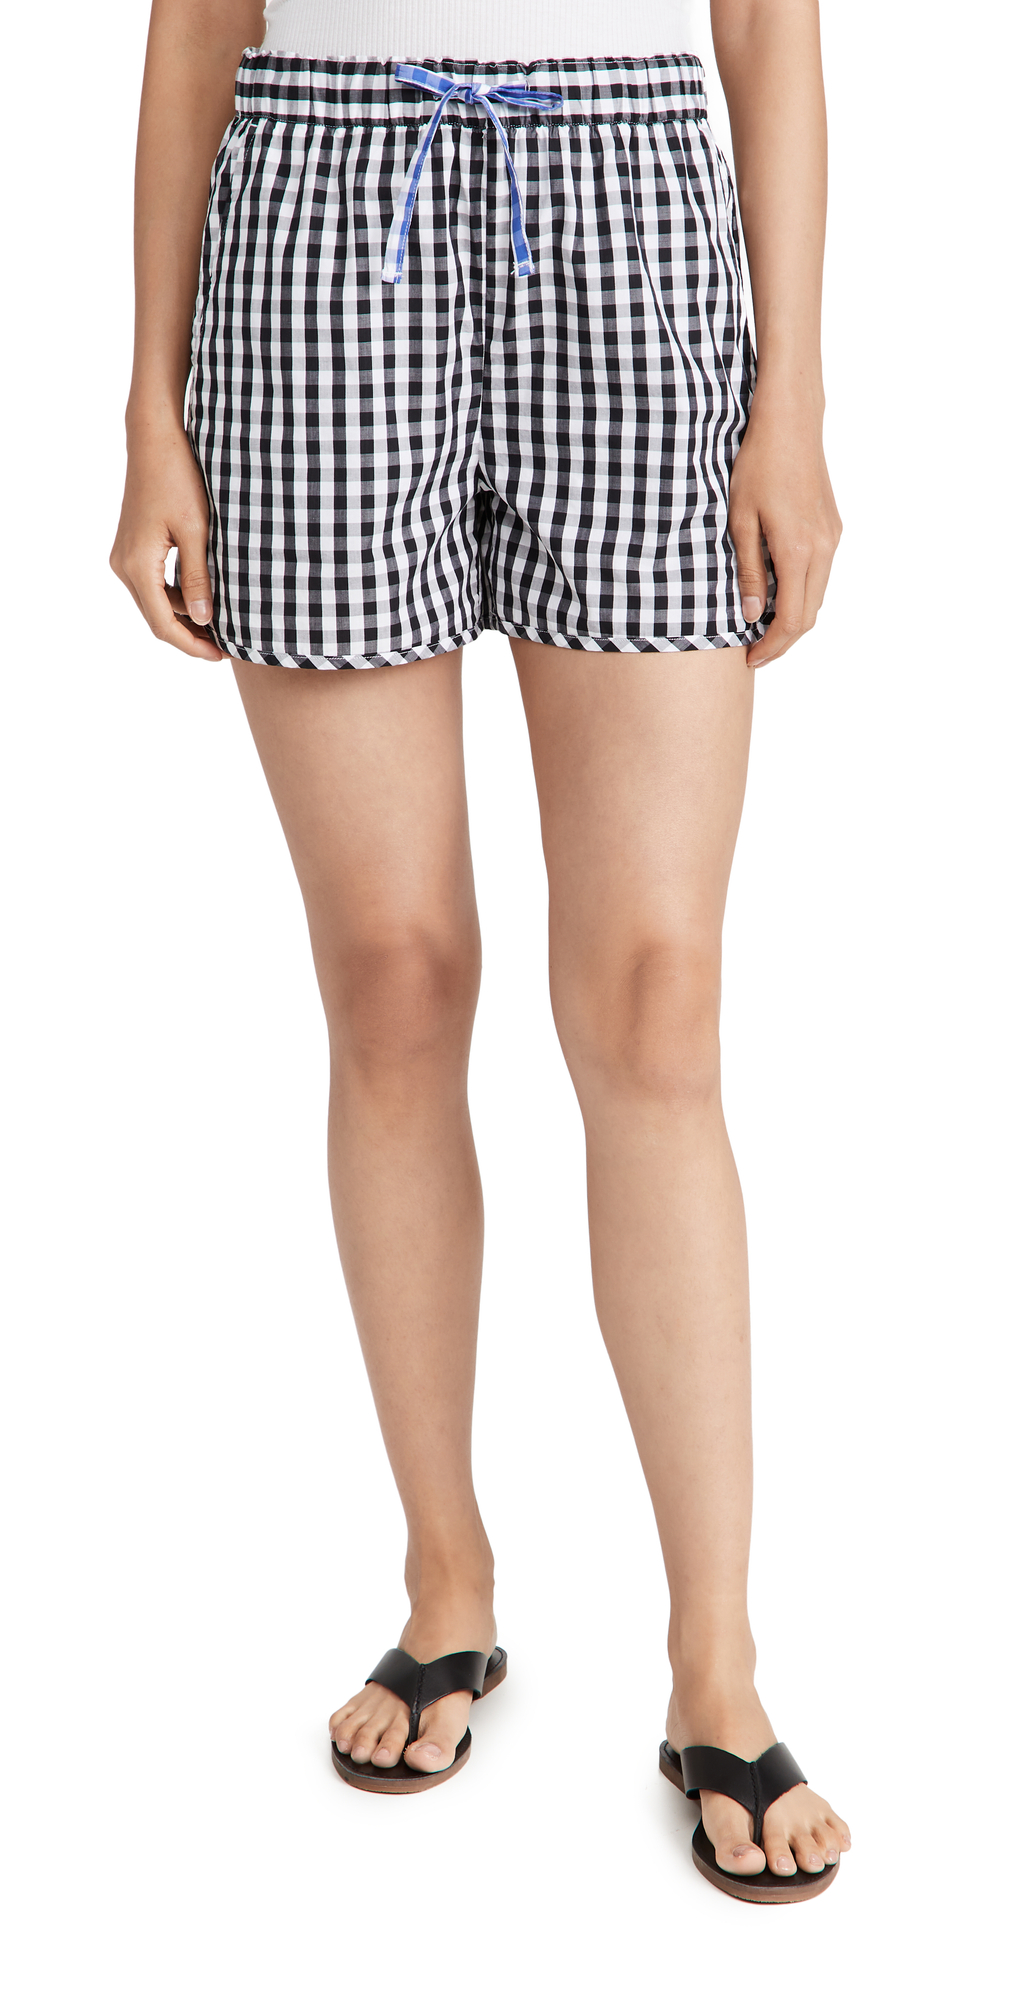 Sunny Pull On Shorts in Gingham